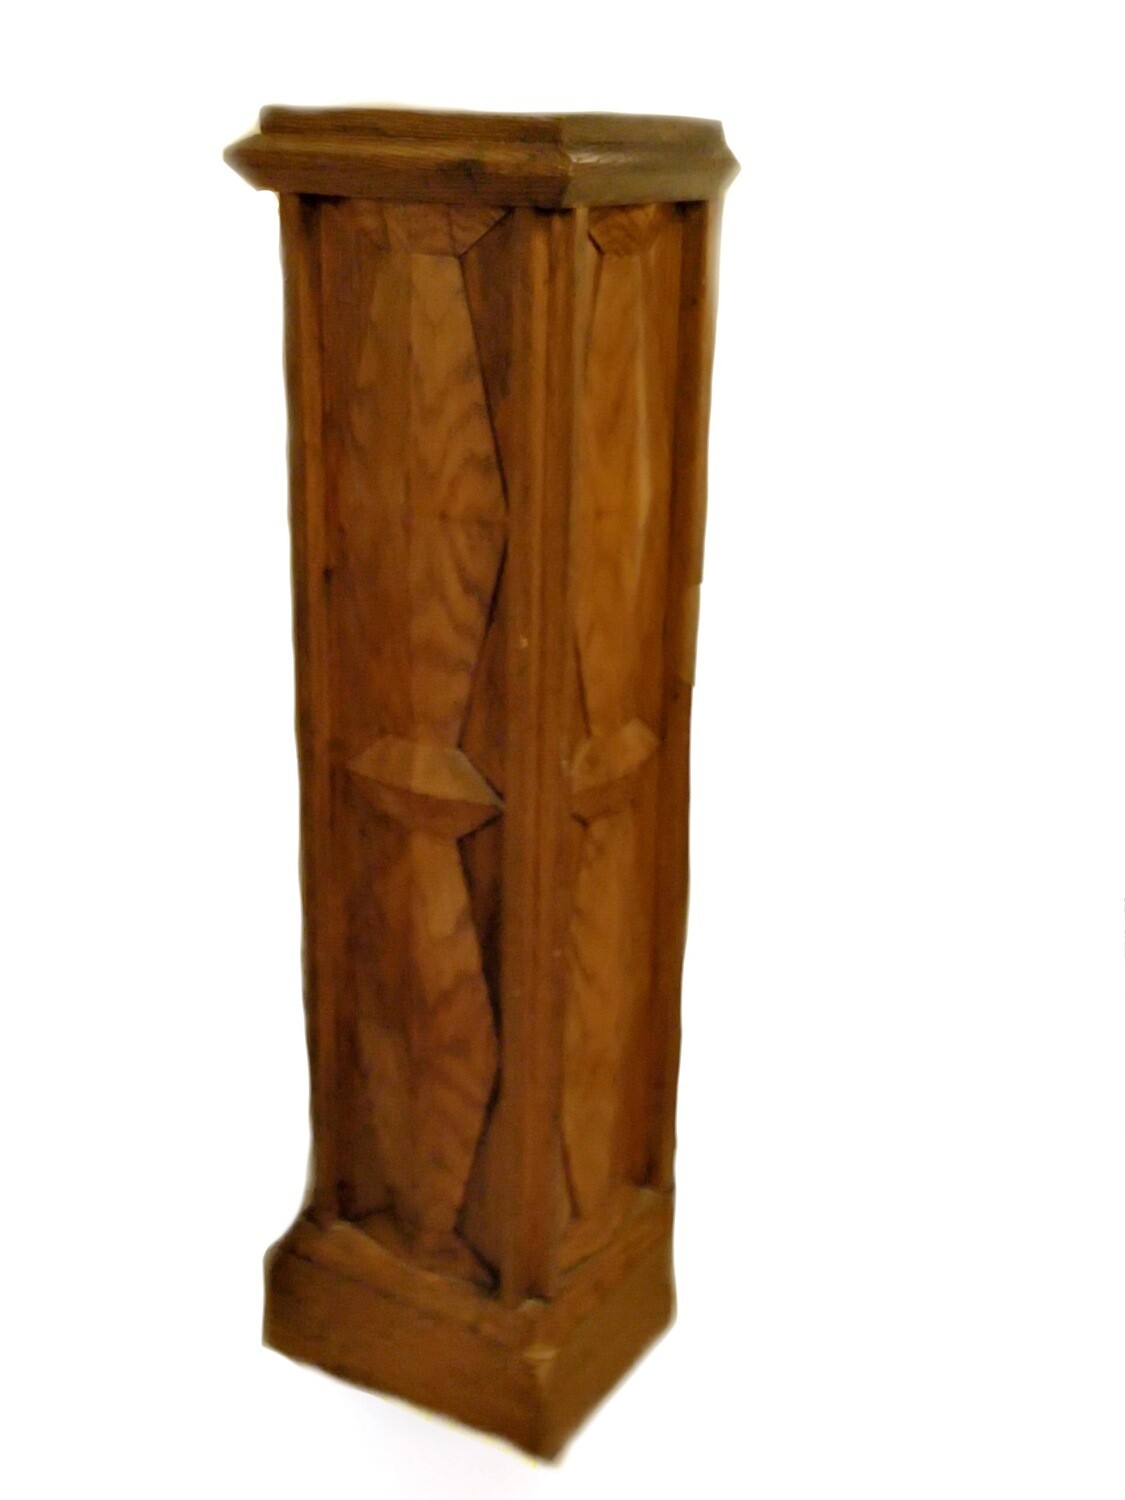 Art Deco Tall Floor Donation Box Plant Stand Valuables Safe